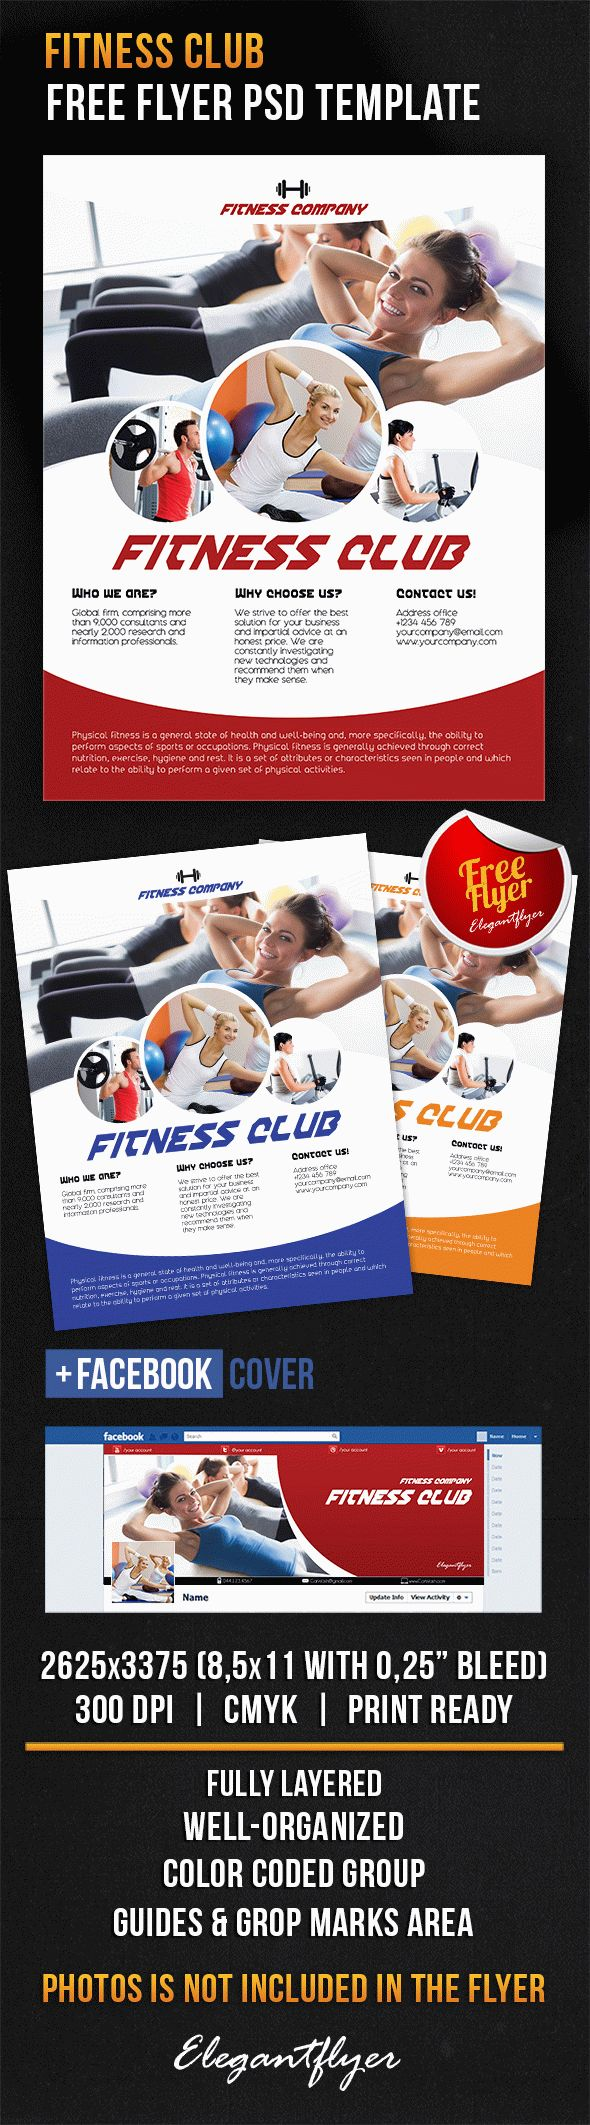 Fitness club – Free Flyer PSD Template + Facebook Cover